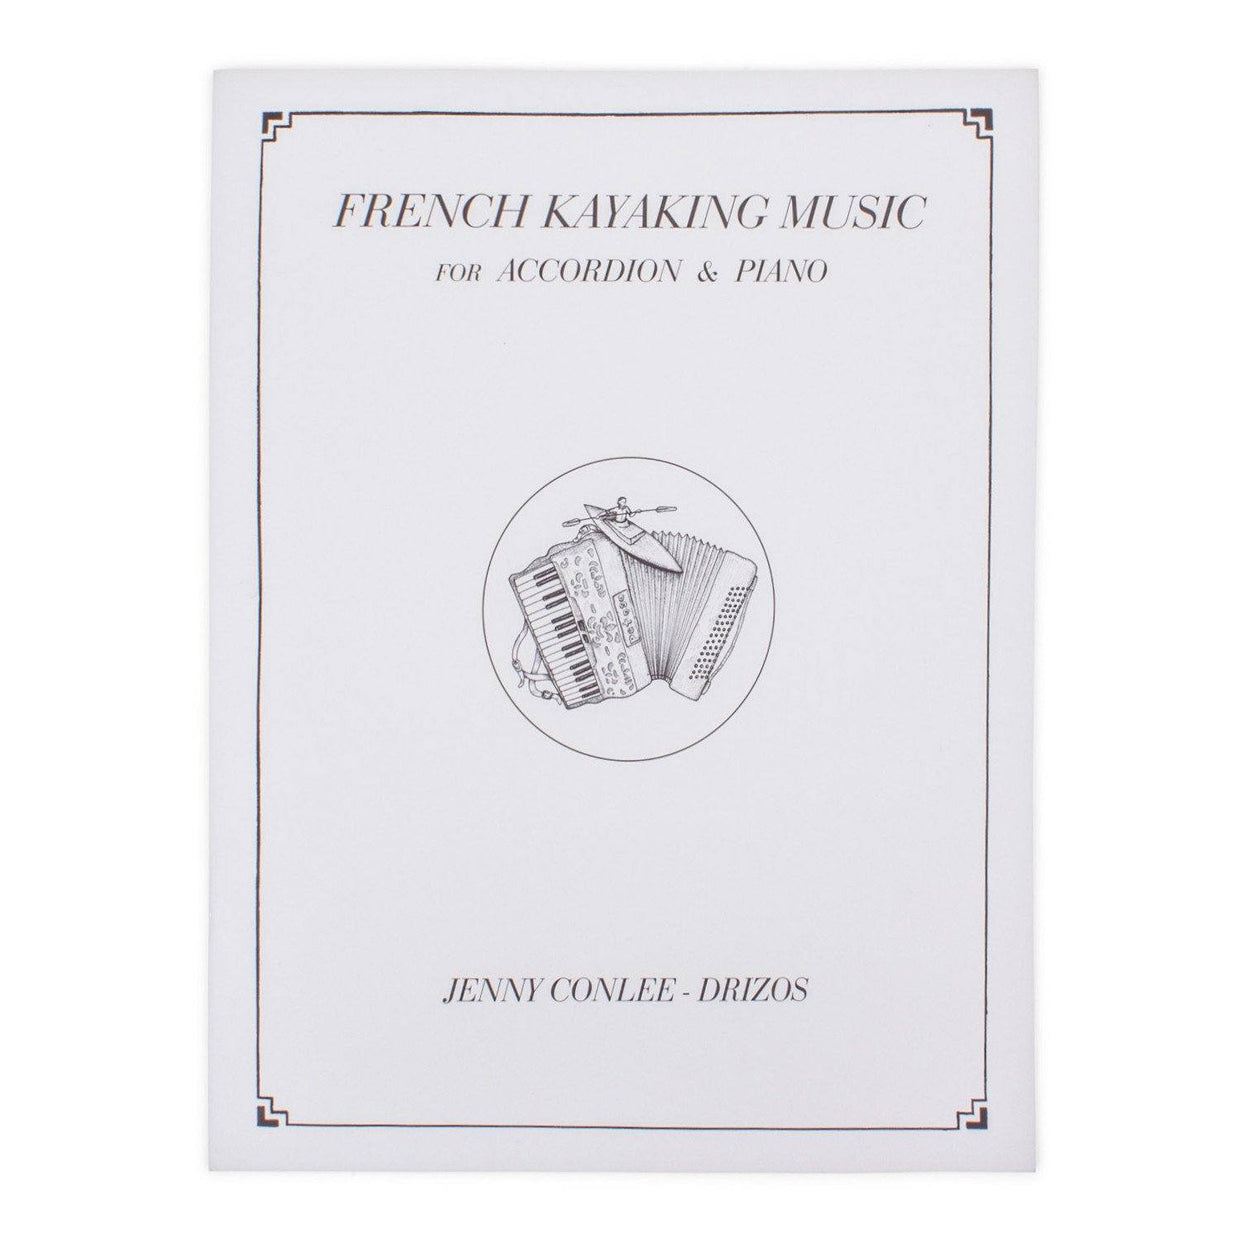 French Kayaking Music Book For Accordion & Piano - By Jenny Conlee